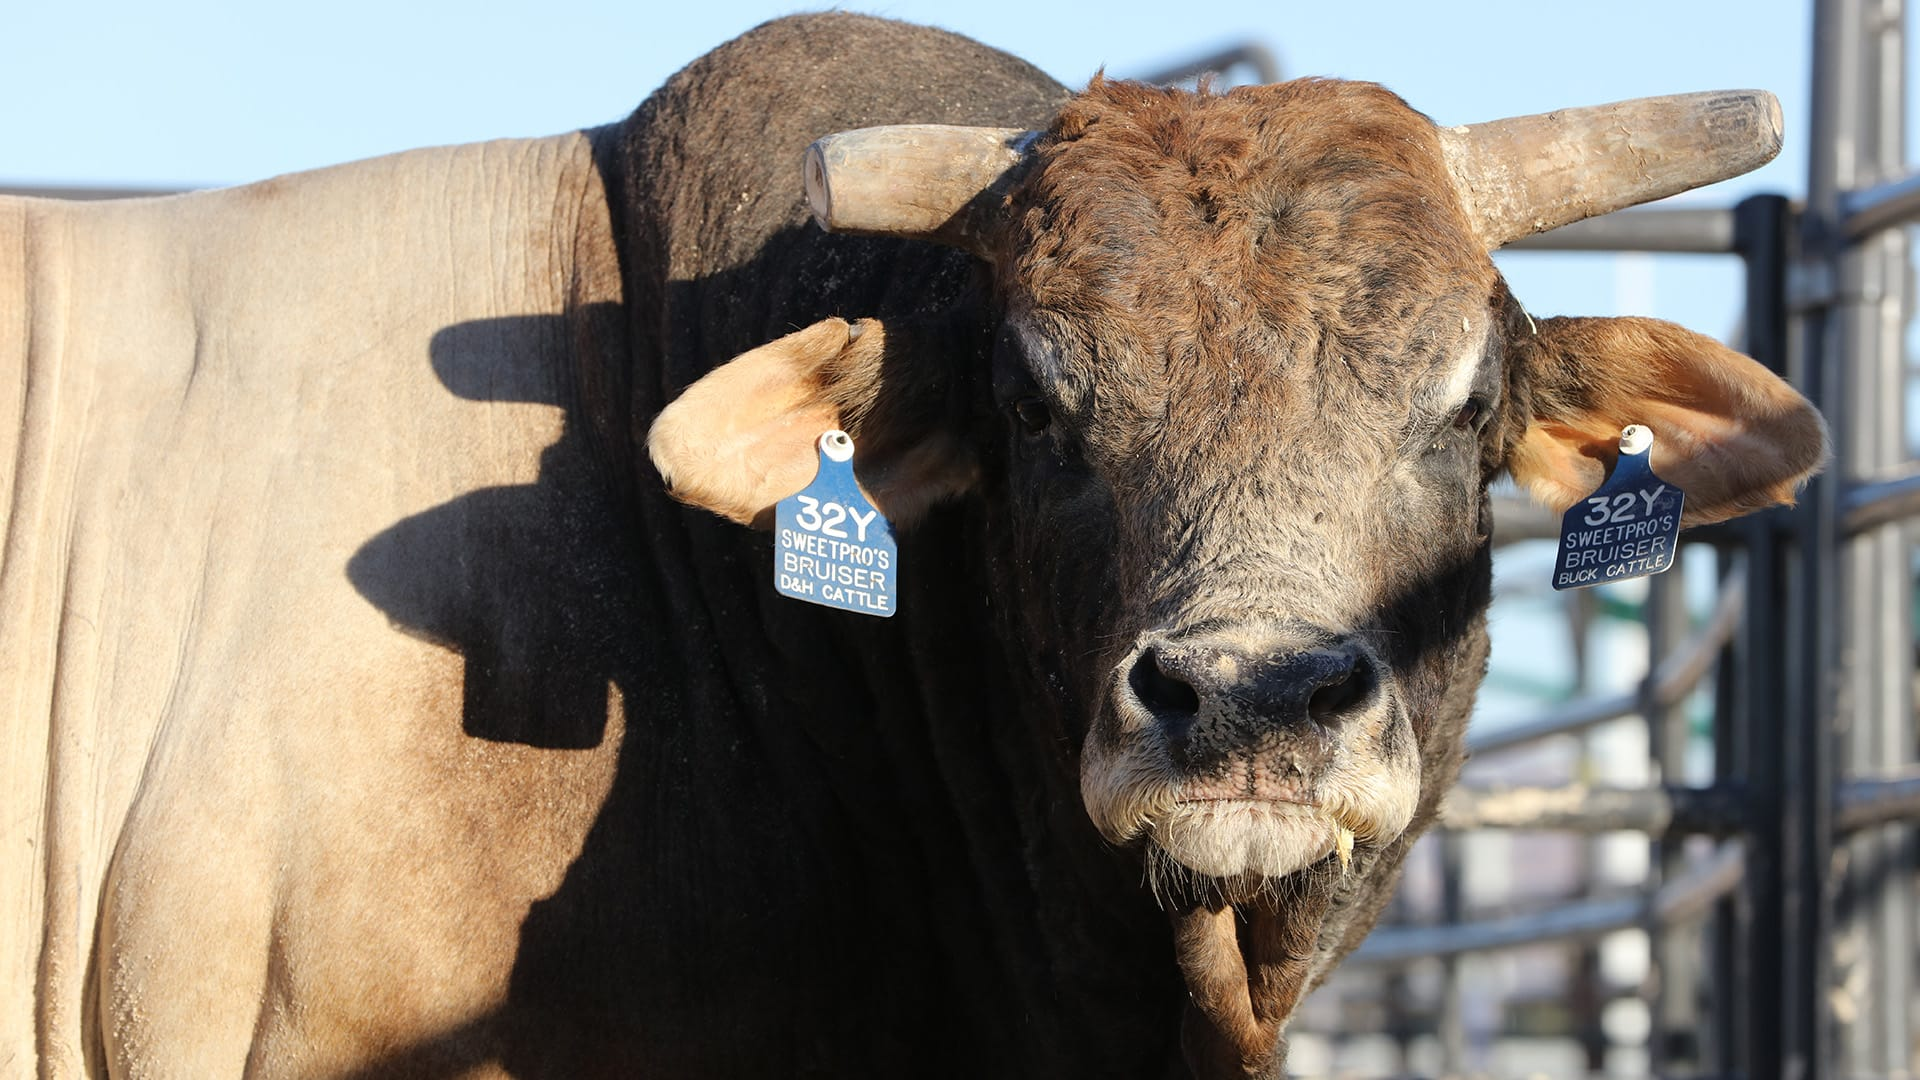 SweetPro's Bruiser getting closer to PBR return, but still at least a month away